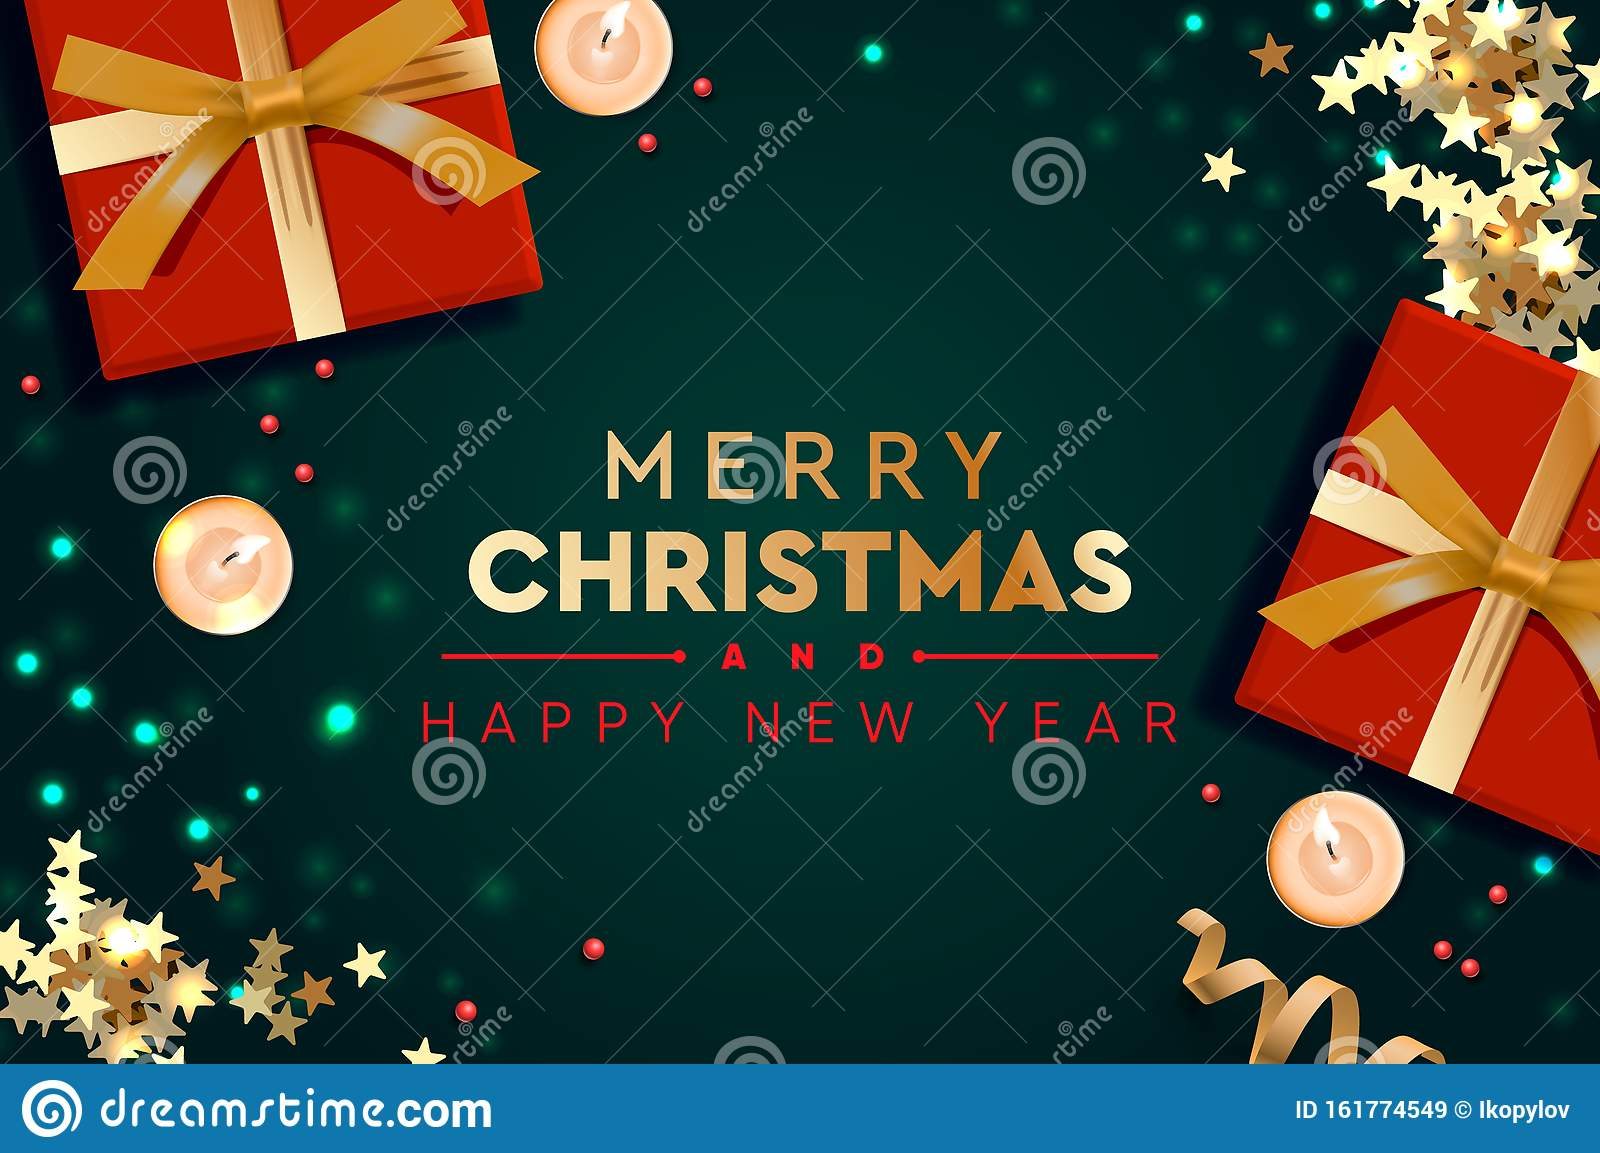 Southwest Merry Christmas And Happy New Year 2020 Pictures Free 2020 Happy New Year And Merry Christmas Background. Top View Of